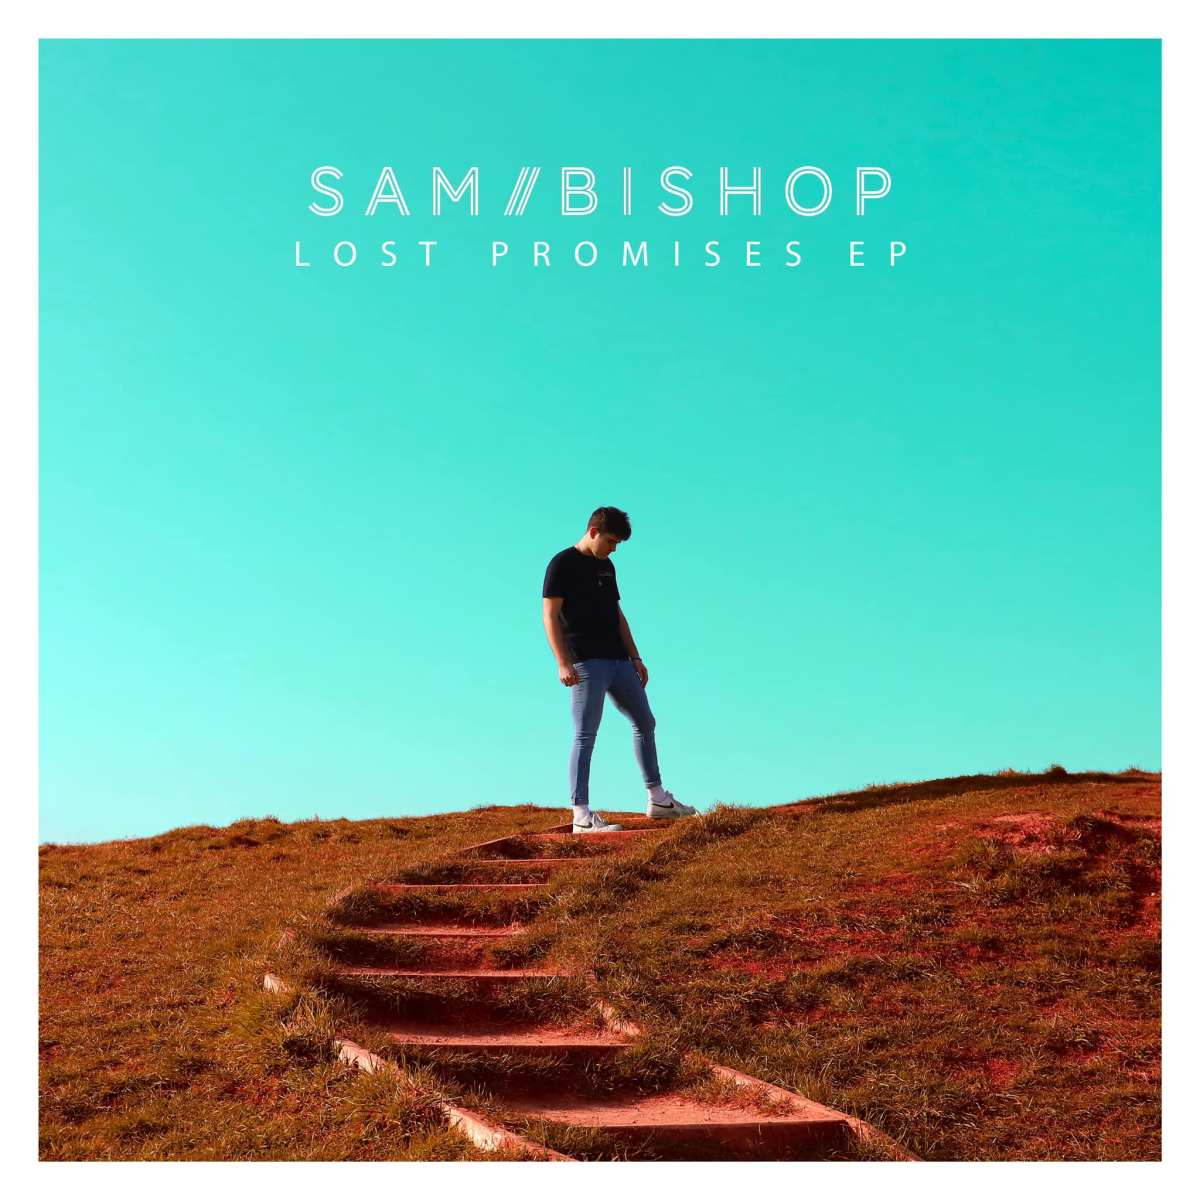 The Lost Promises of SamBishop